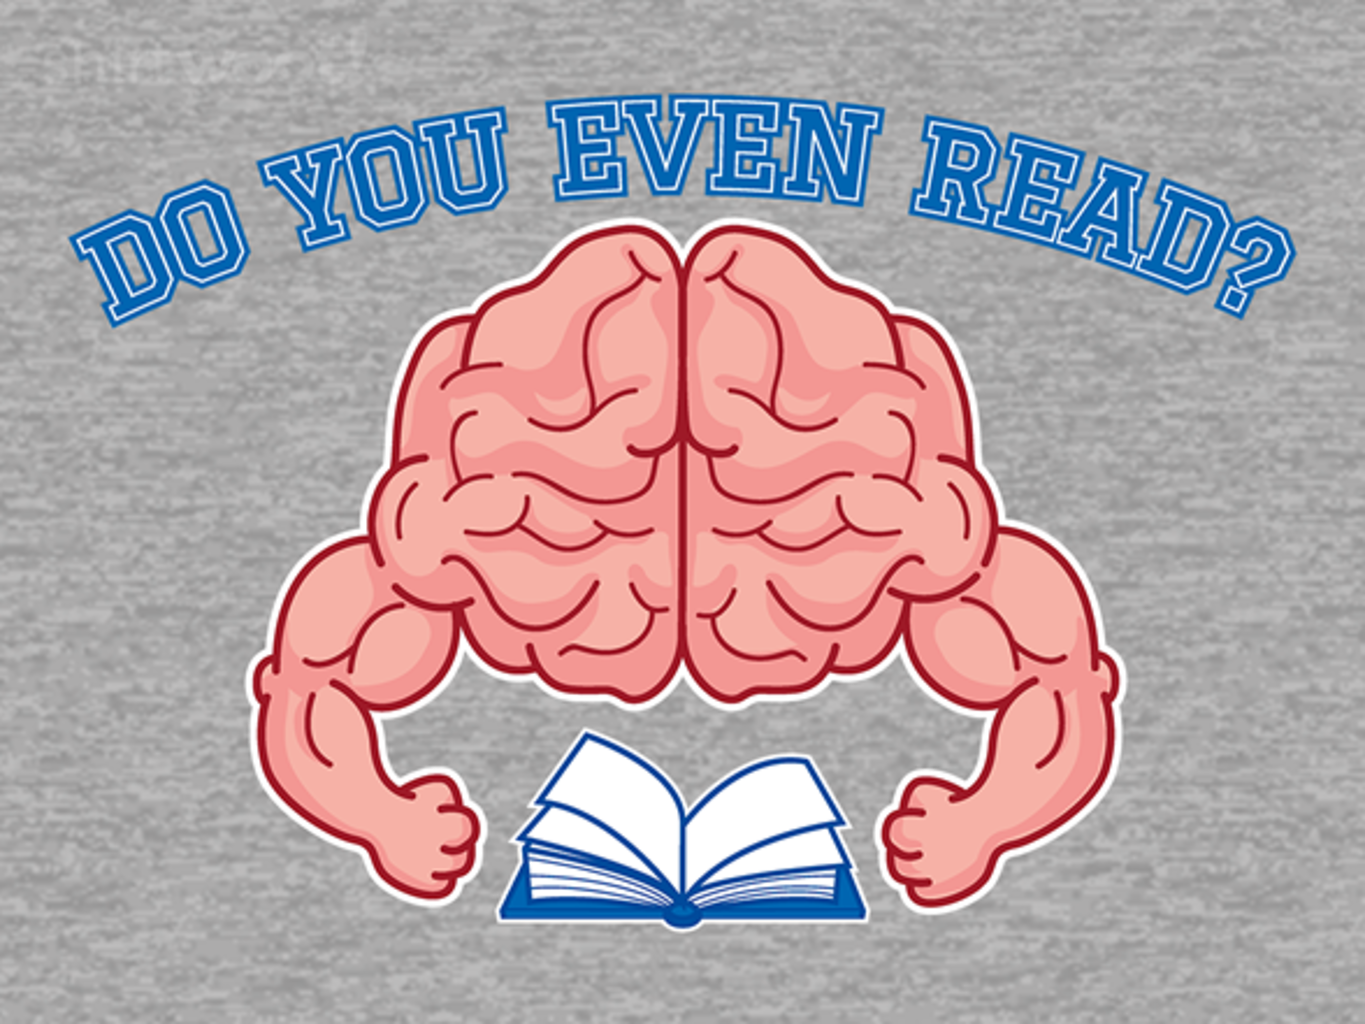 Woot!: Do You Even Read, Bro?